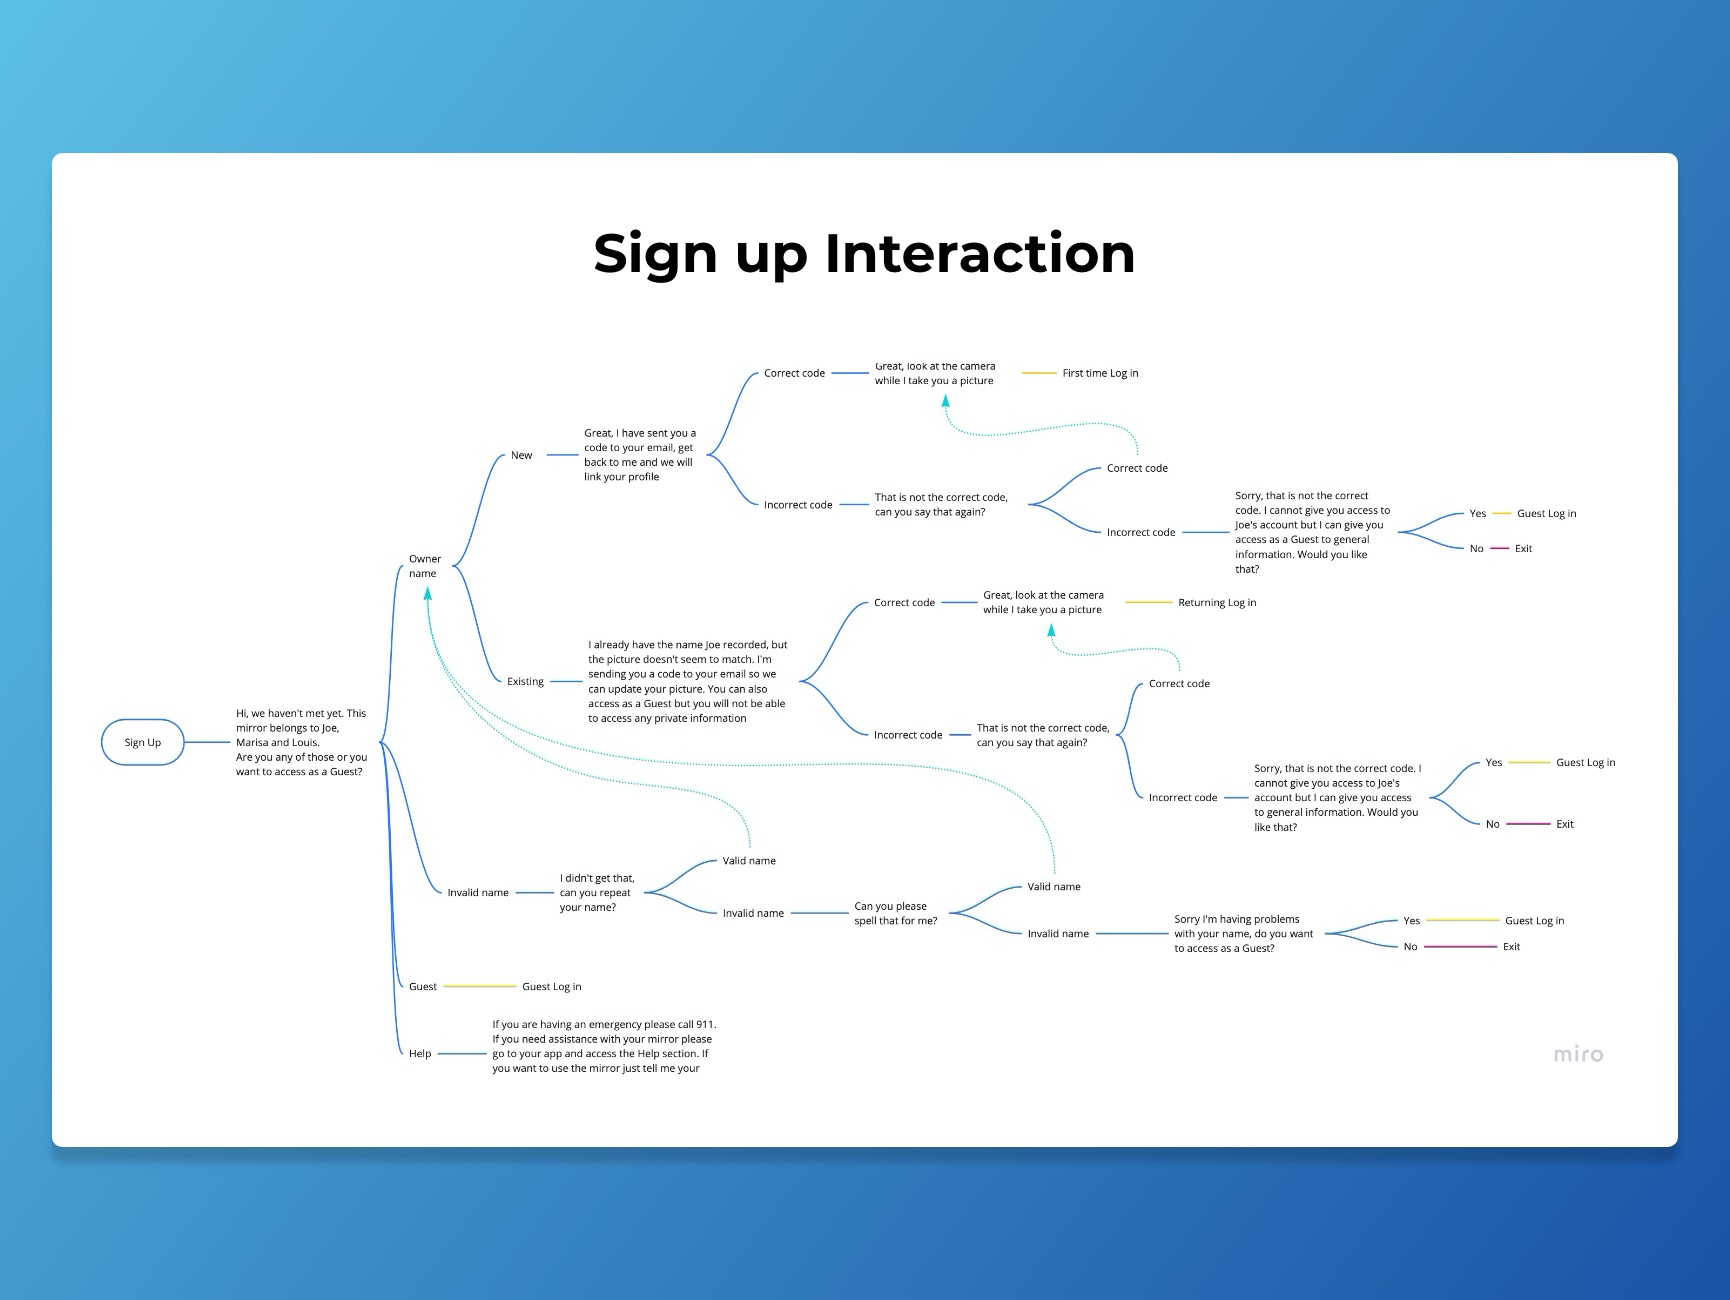 Sign up interaction decision tree